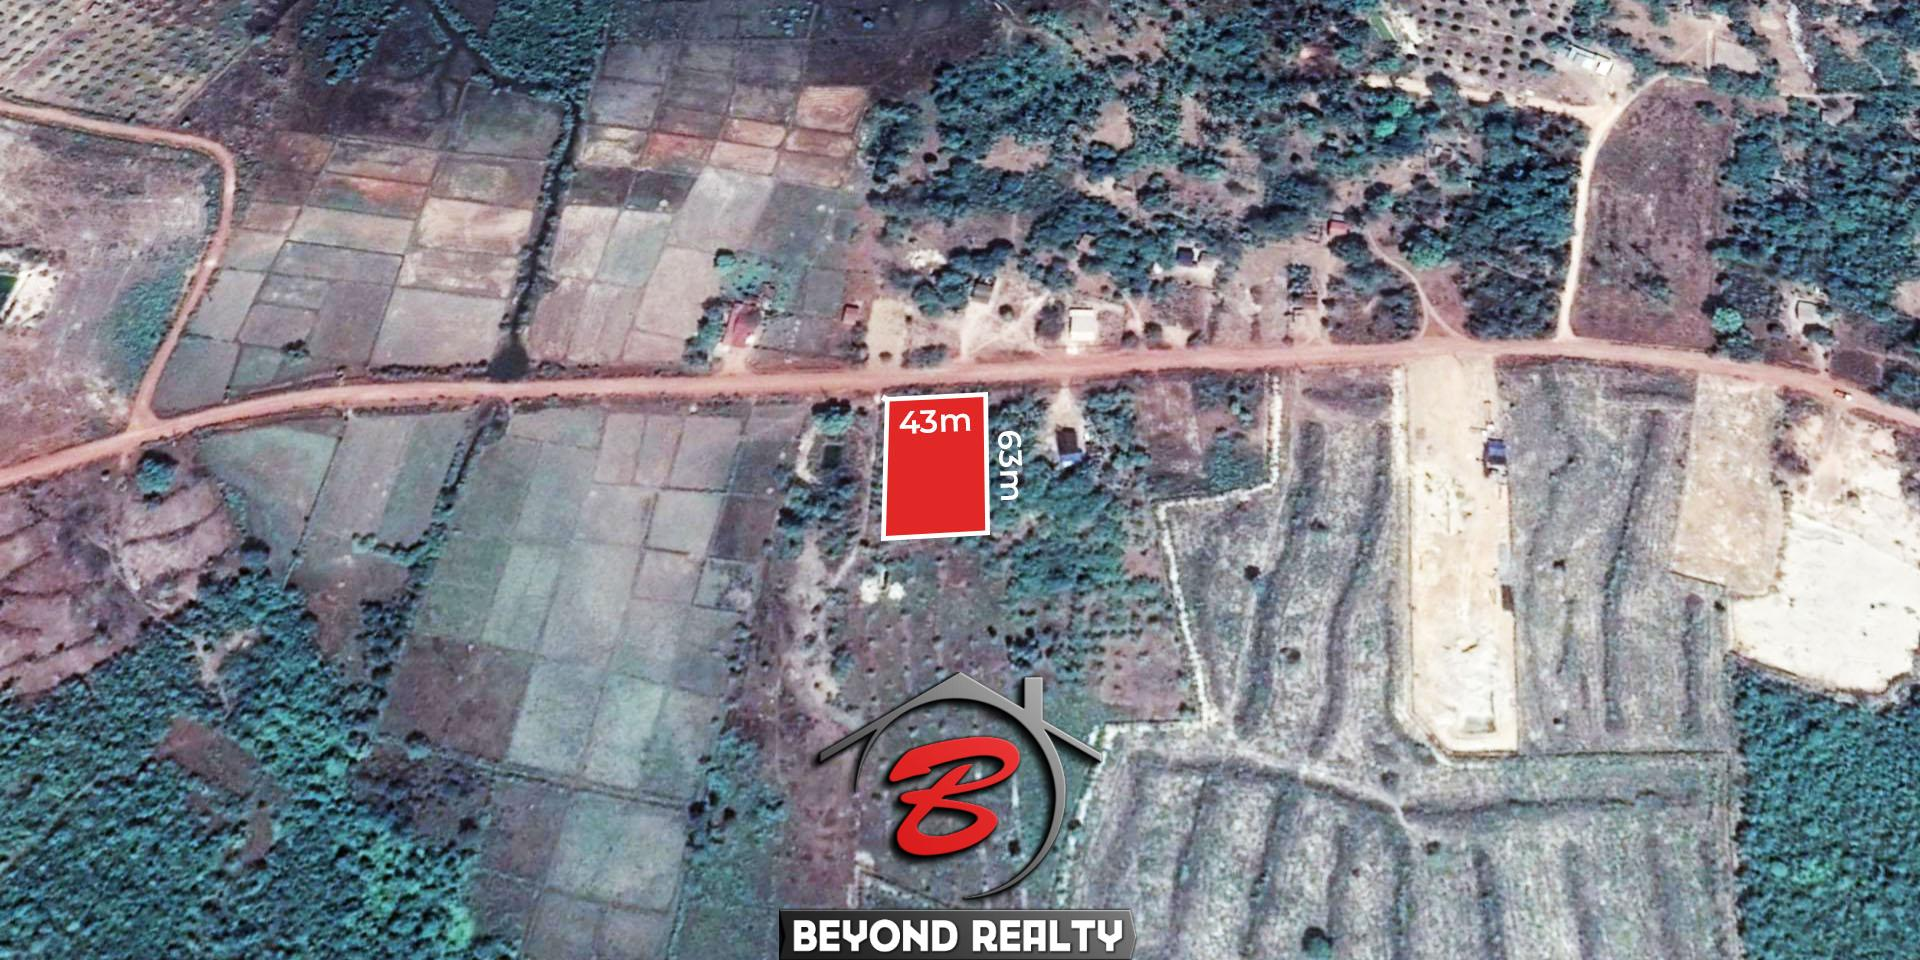 the layout to the satellite image of the vacant land plot for sale in Srae Ambel